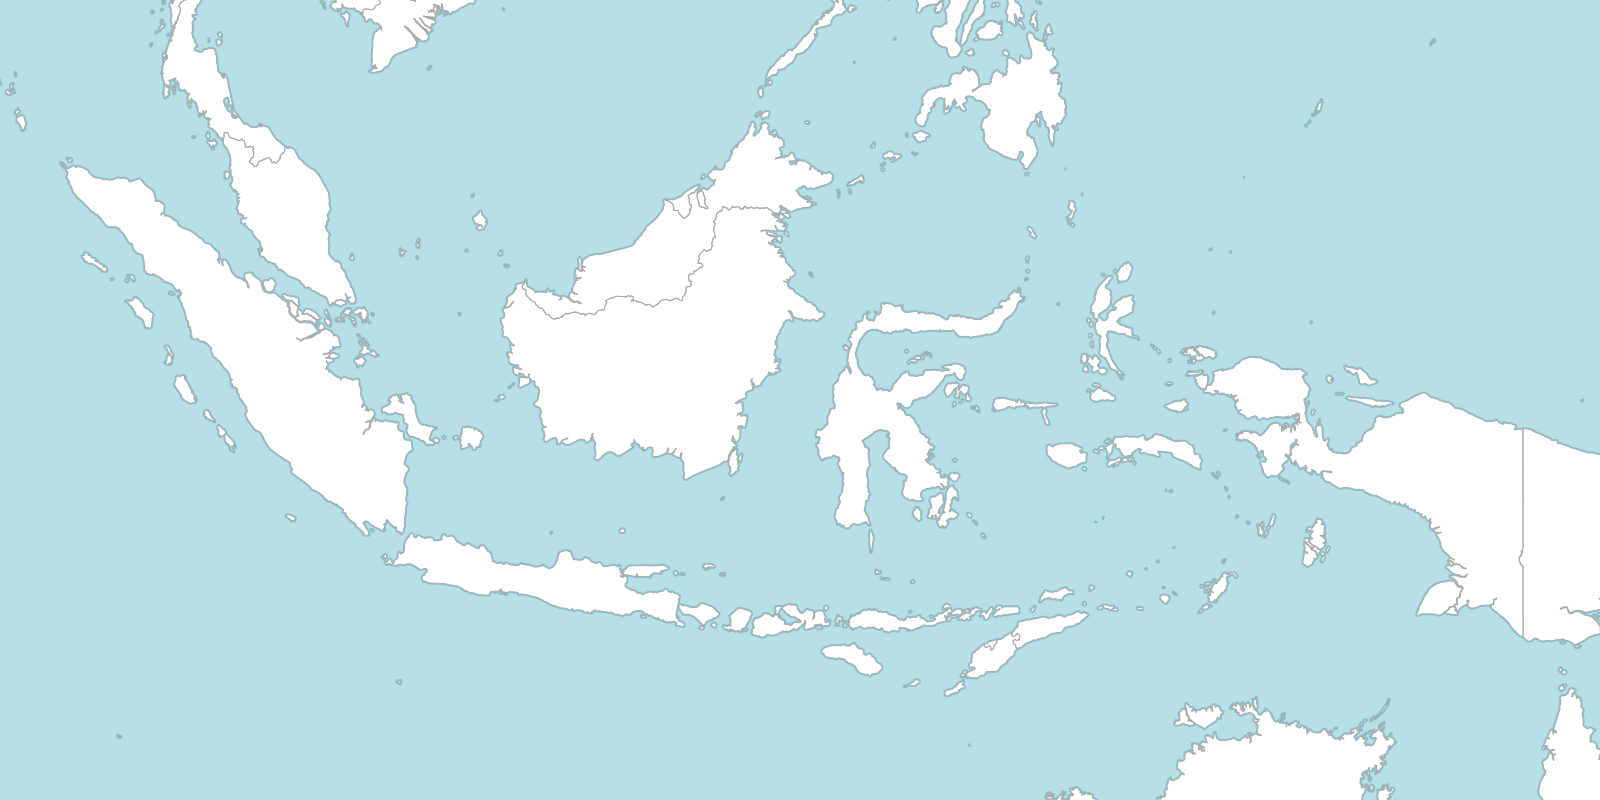 6 free maps of Indonesia   ASEAN UP Large Indonesia blank map with countries borders